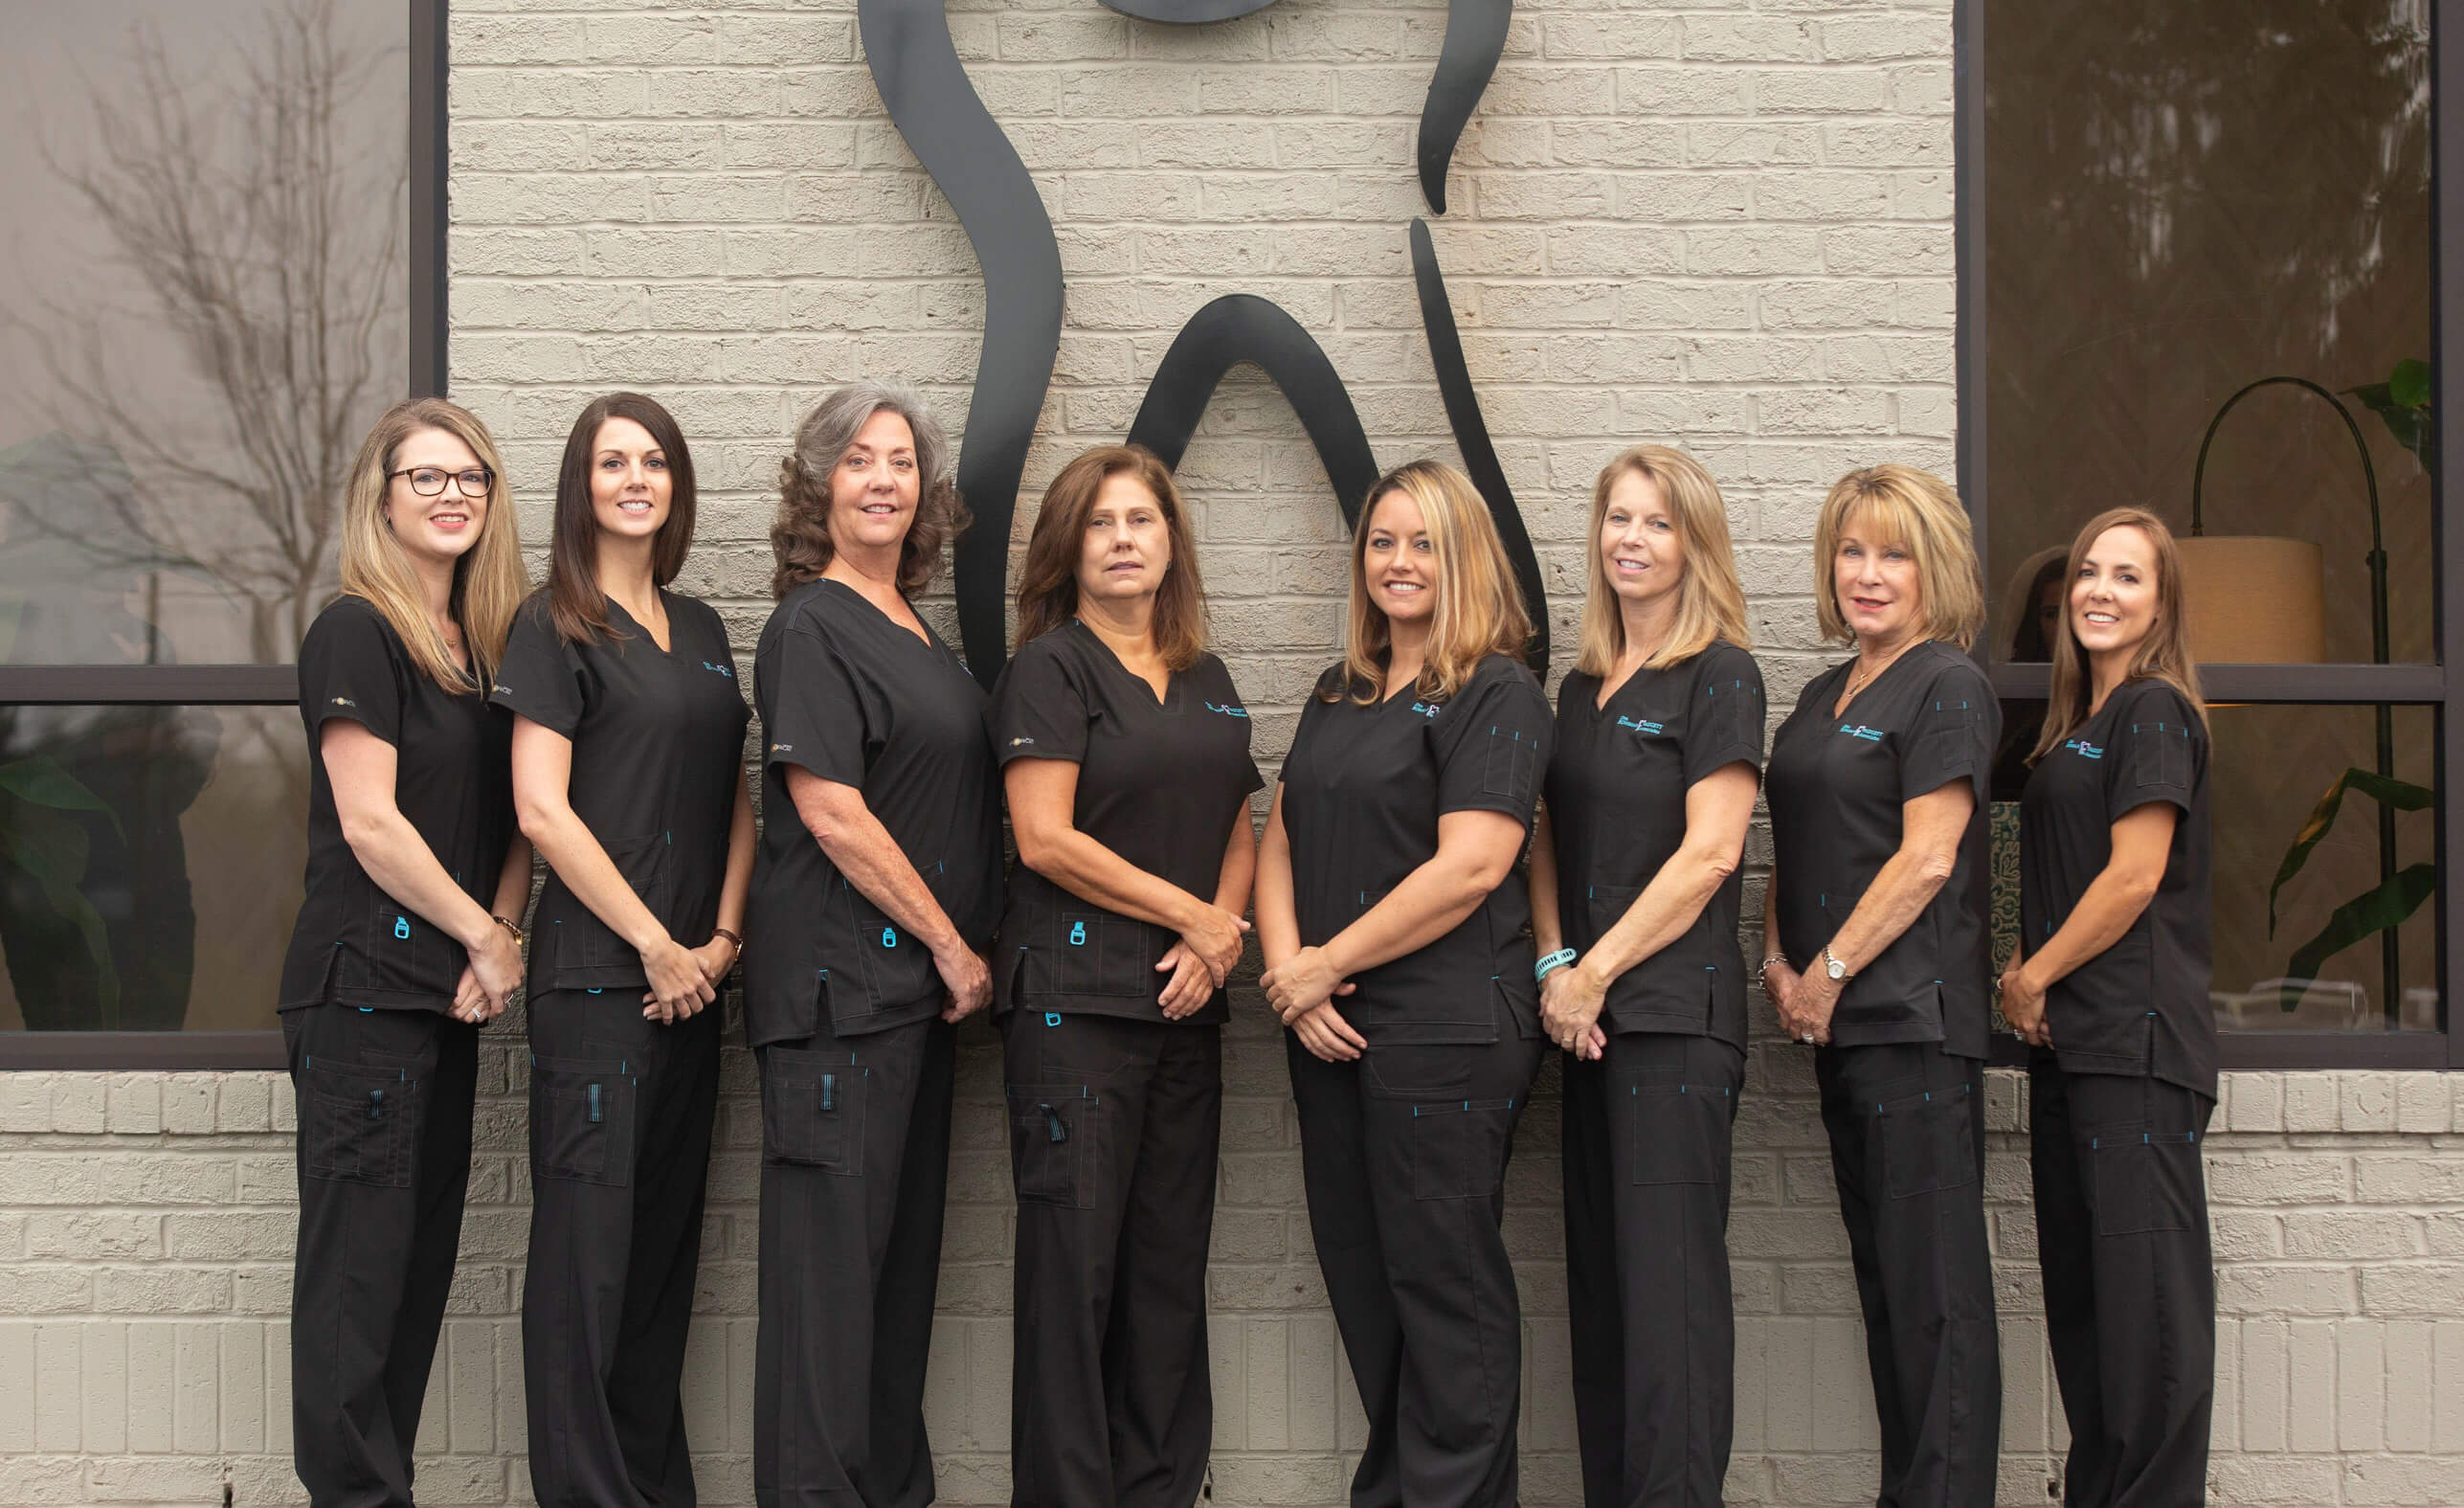 The Dental Hygiene Team Standing Together